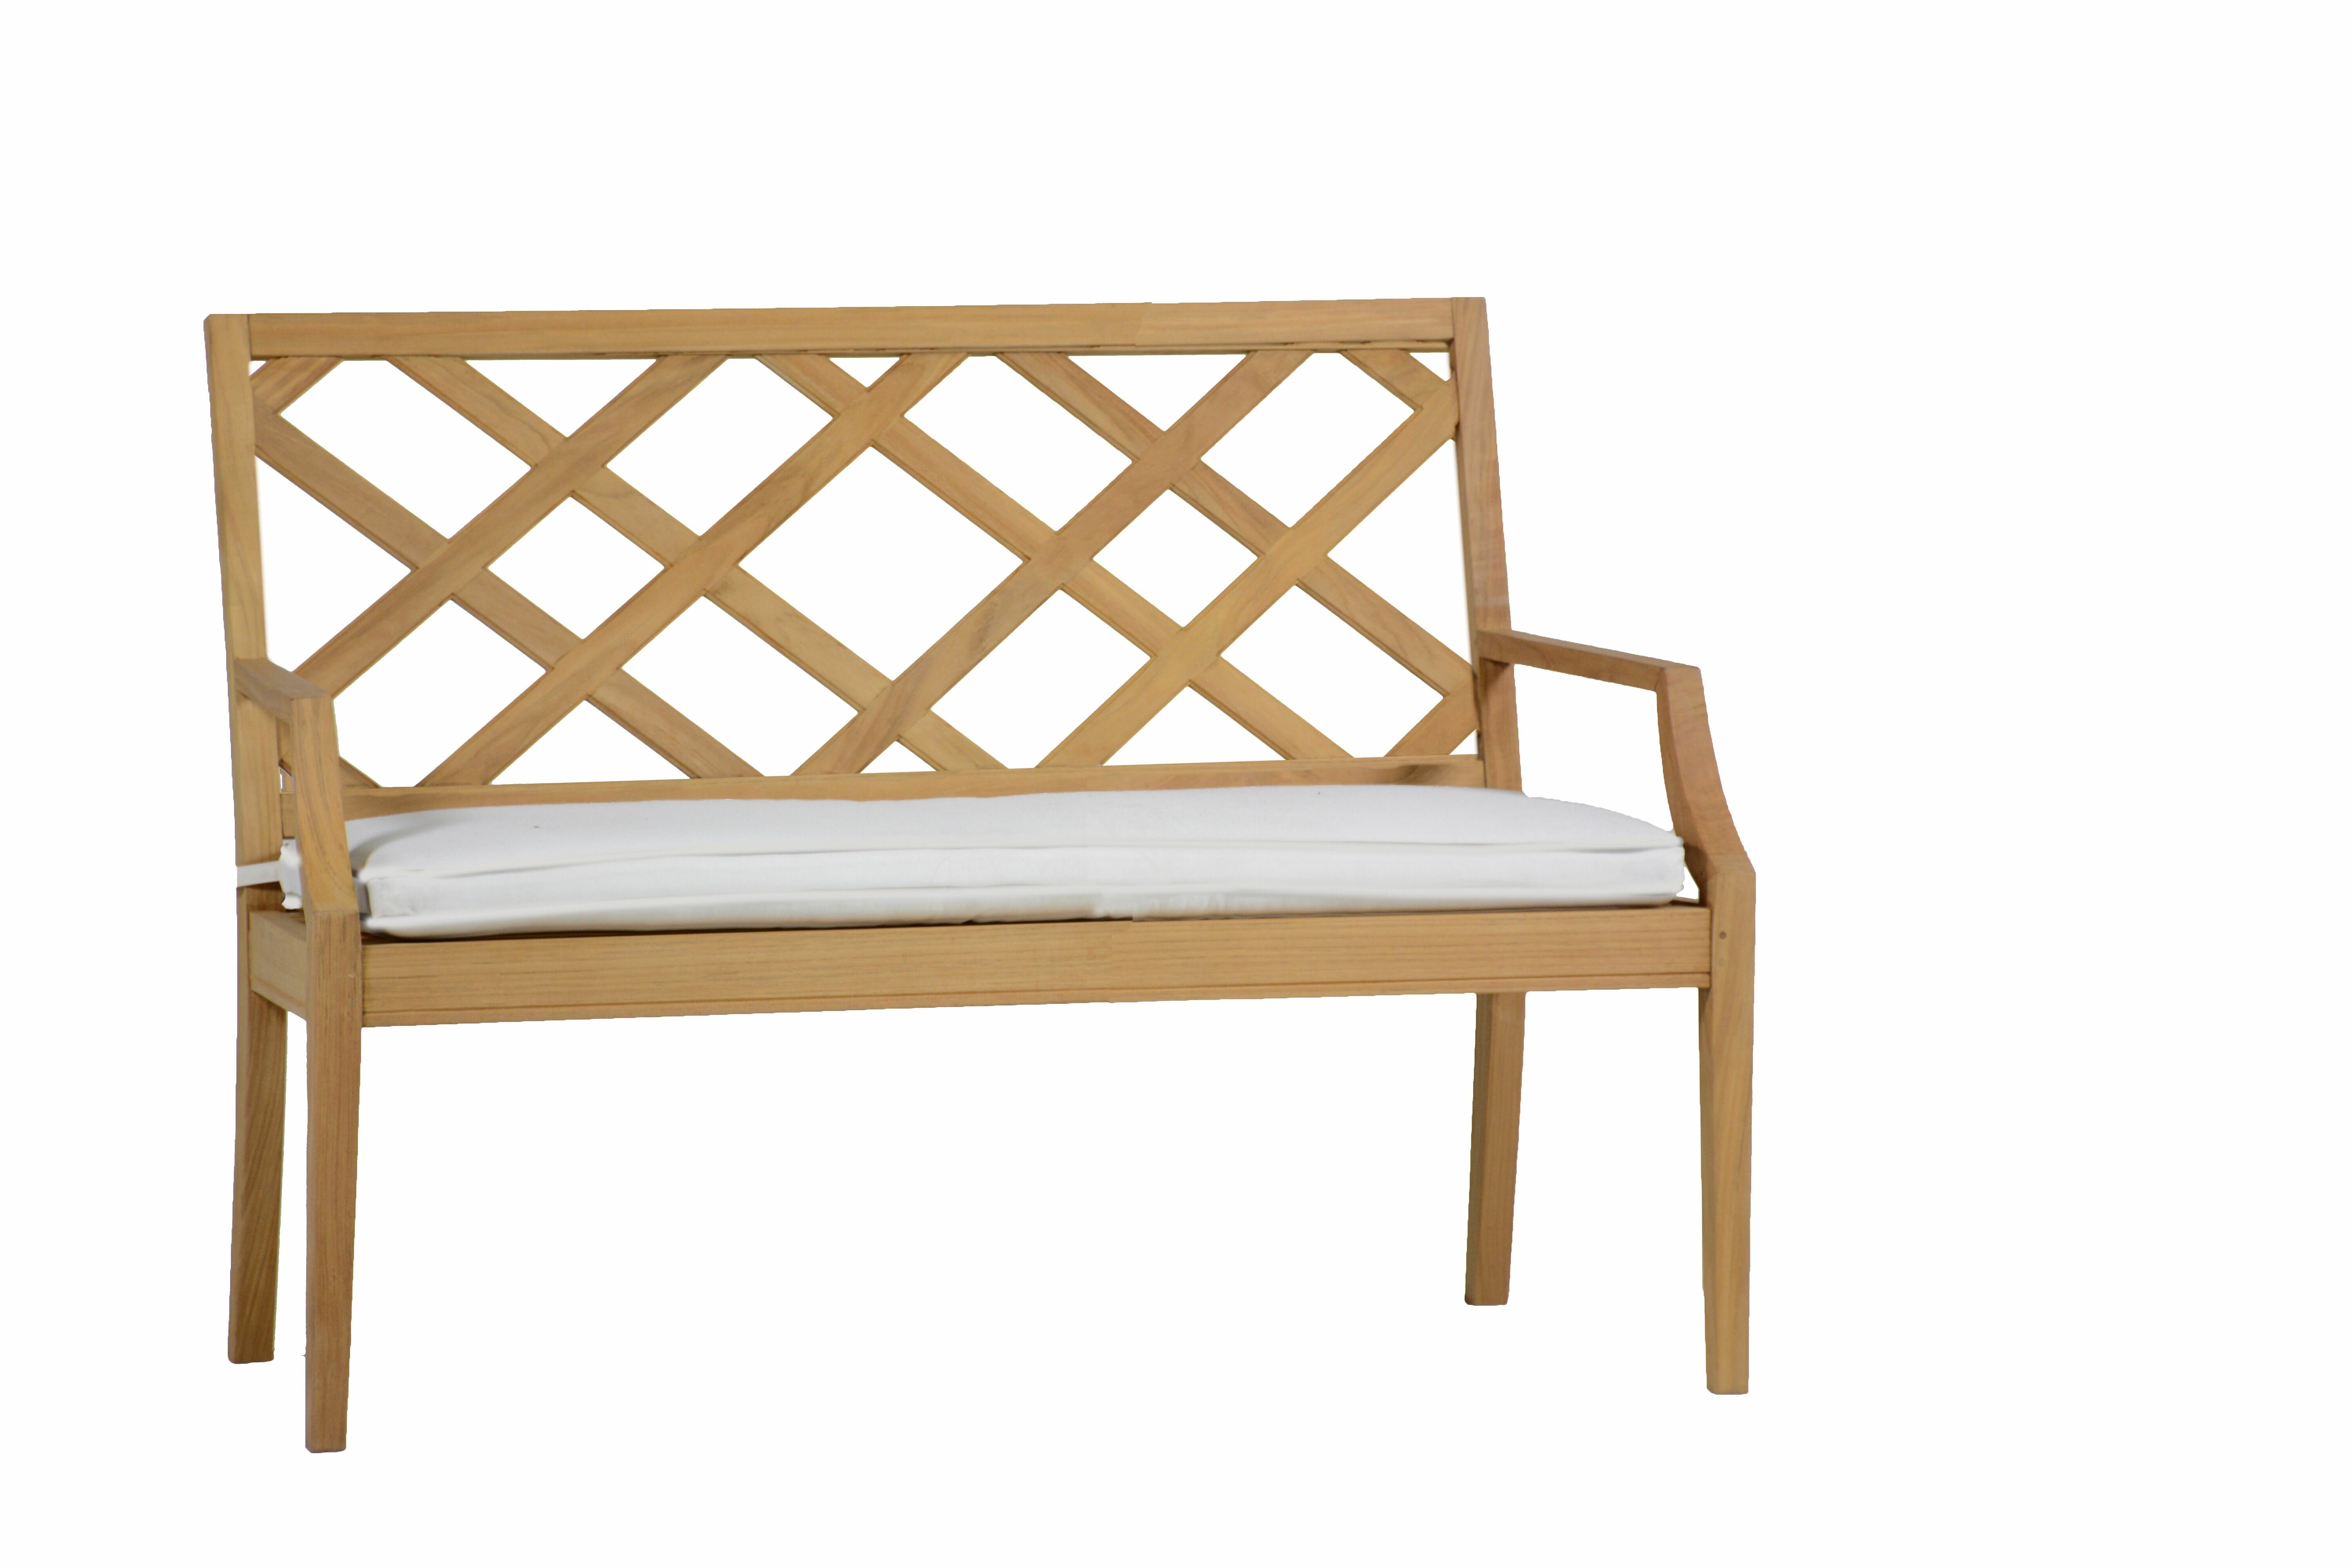 Wondrous Haley Teak Garden Bench Pabps2019 Chair Design Images Pabps2019Com